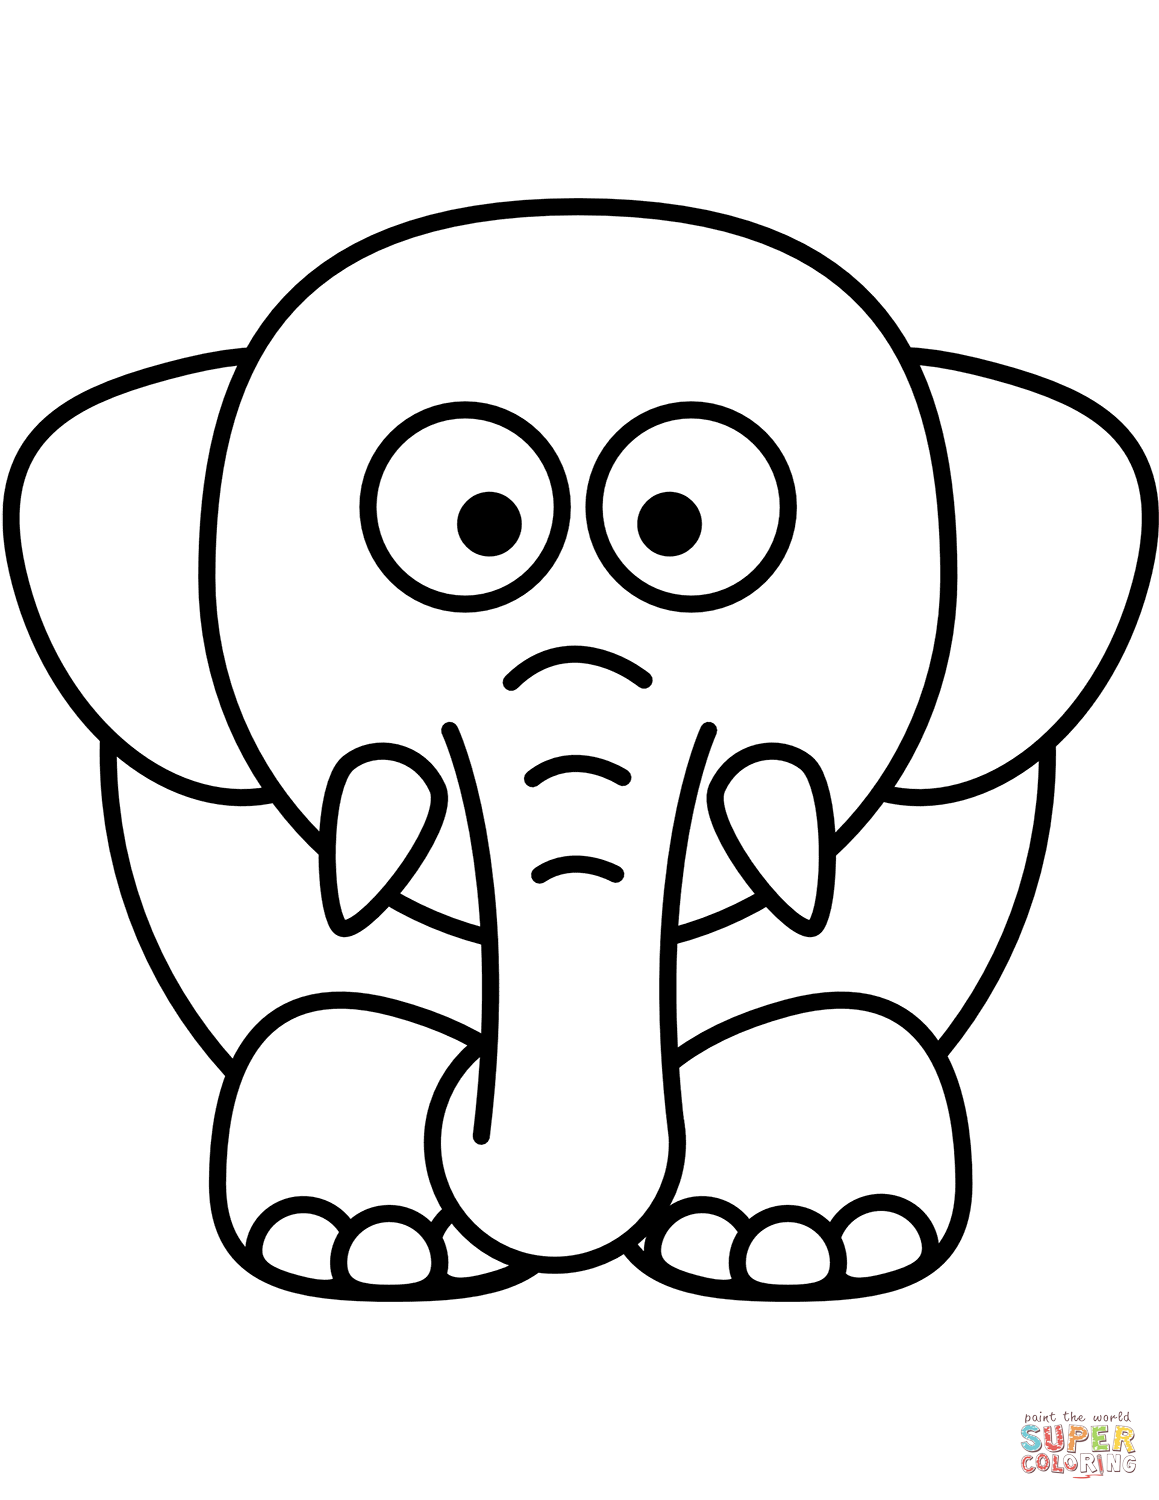 Elephant Cartoon Drawing at GetDrawings.com | Free for personal use ...